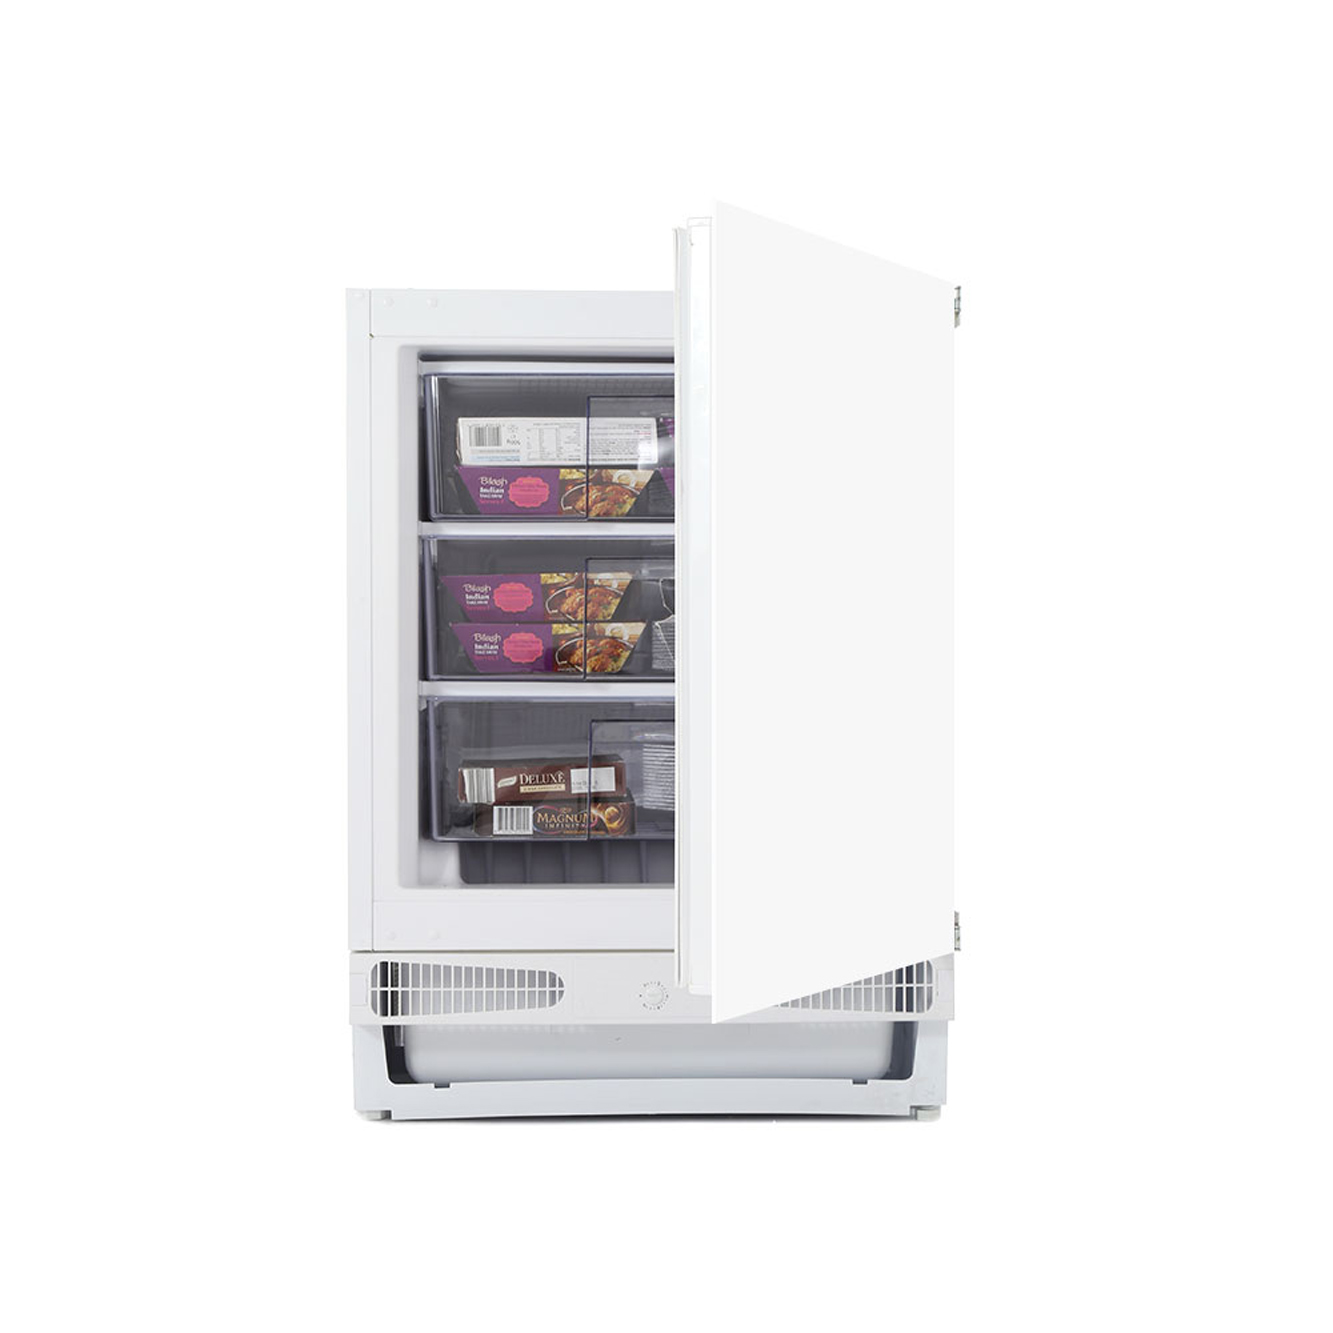 Iberna HUZ107.1 Built Under Freezer